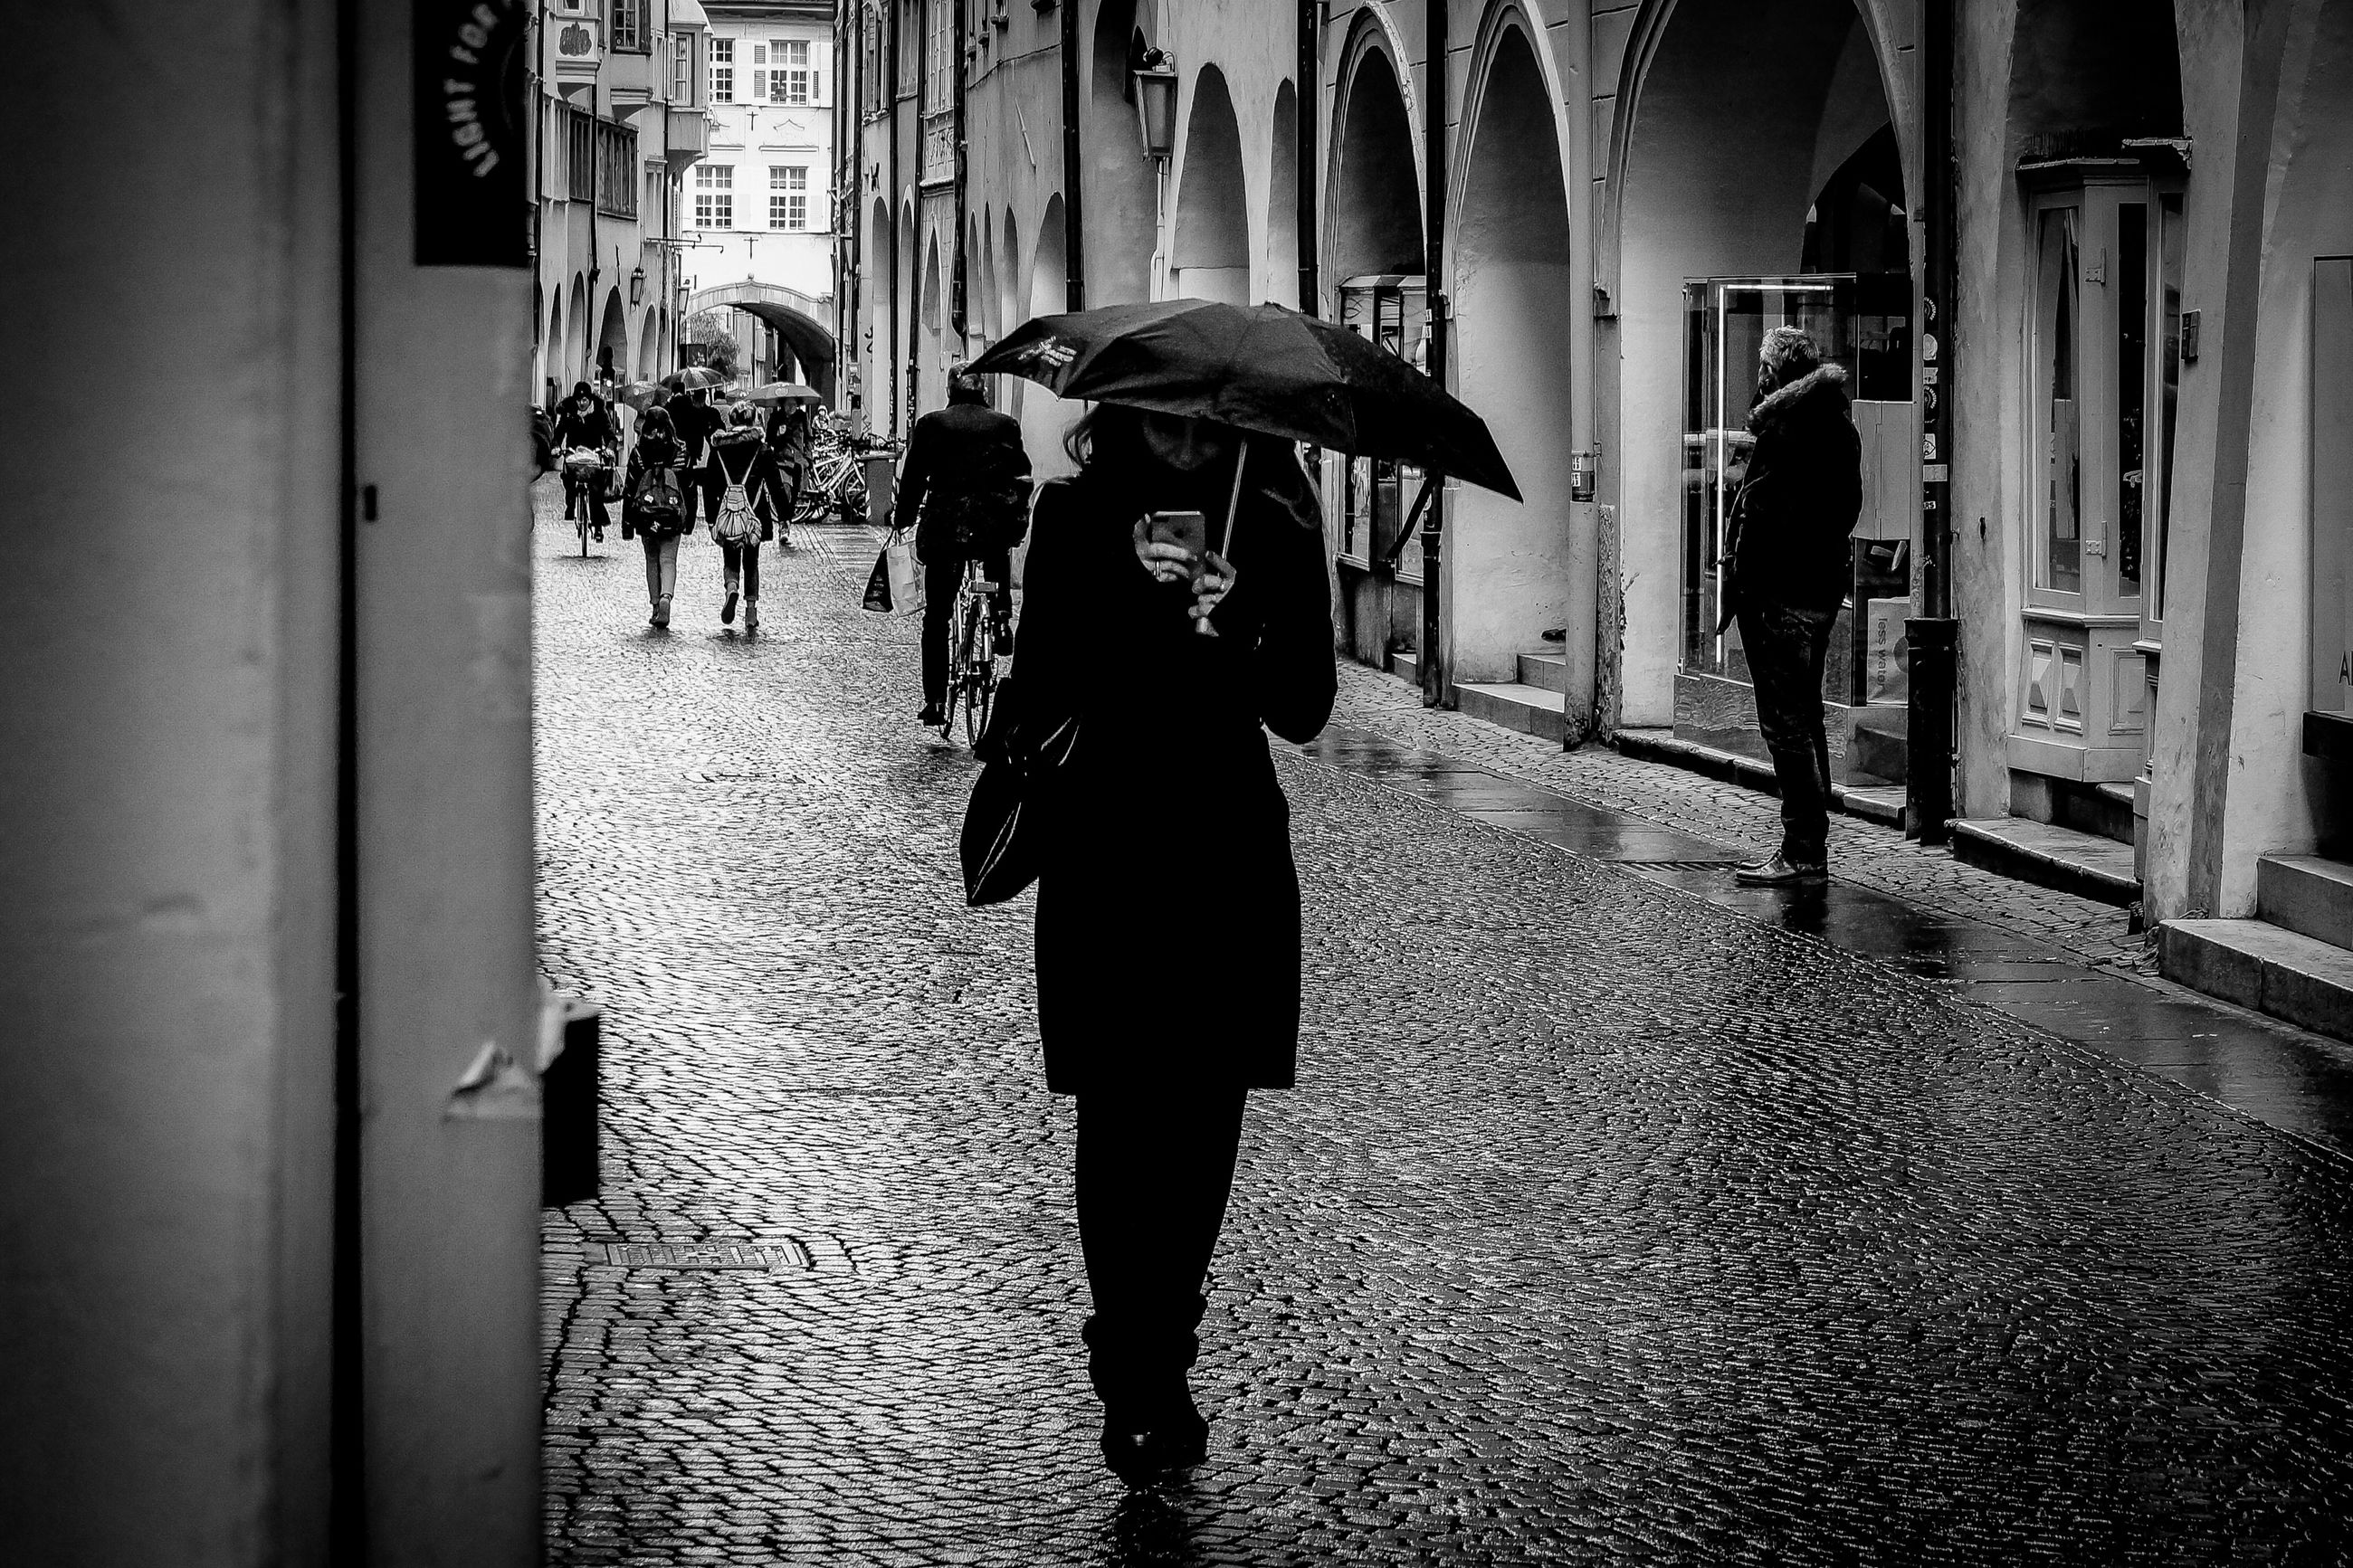 real people, architecture, built structure, building exterior, one person, lifestyles, protection, women, city, leisure activity, adult, standing, umbrella, wet, street, walking, incidental people, security, clothing, rain, rainy season, beautiful woman